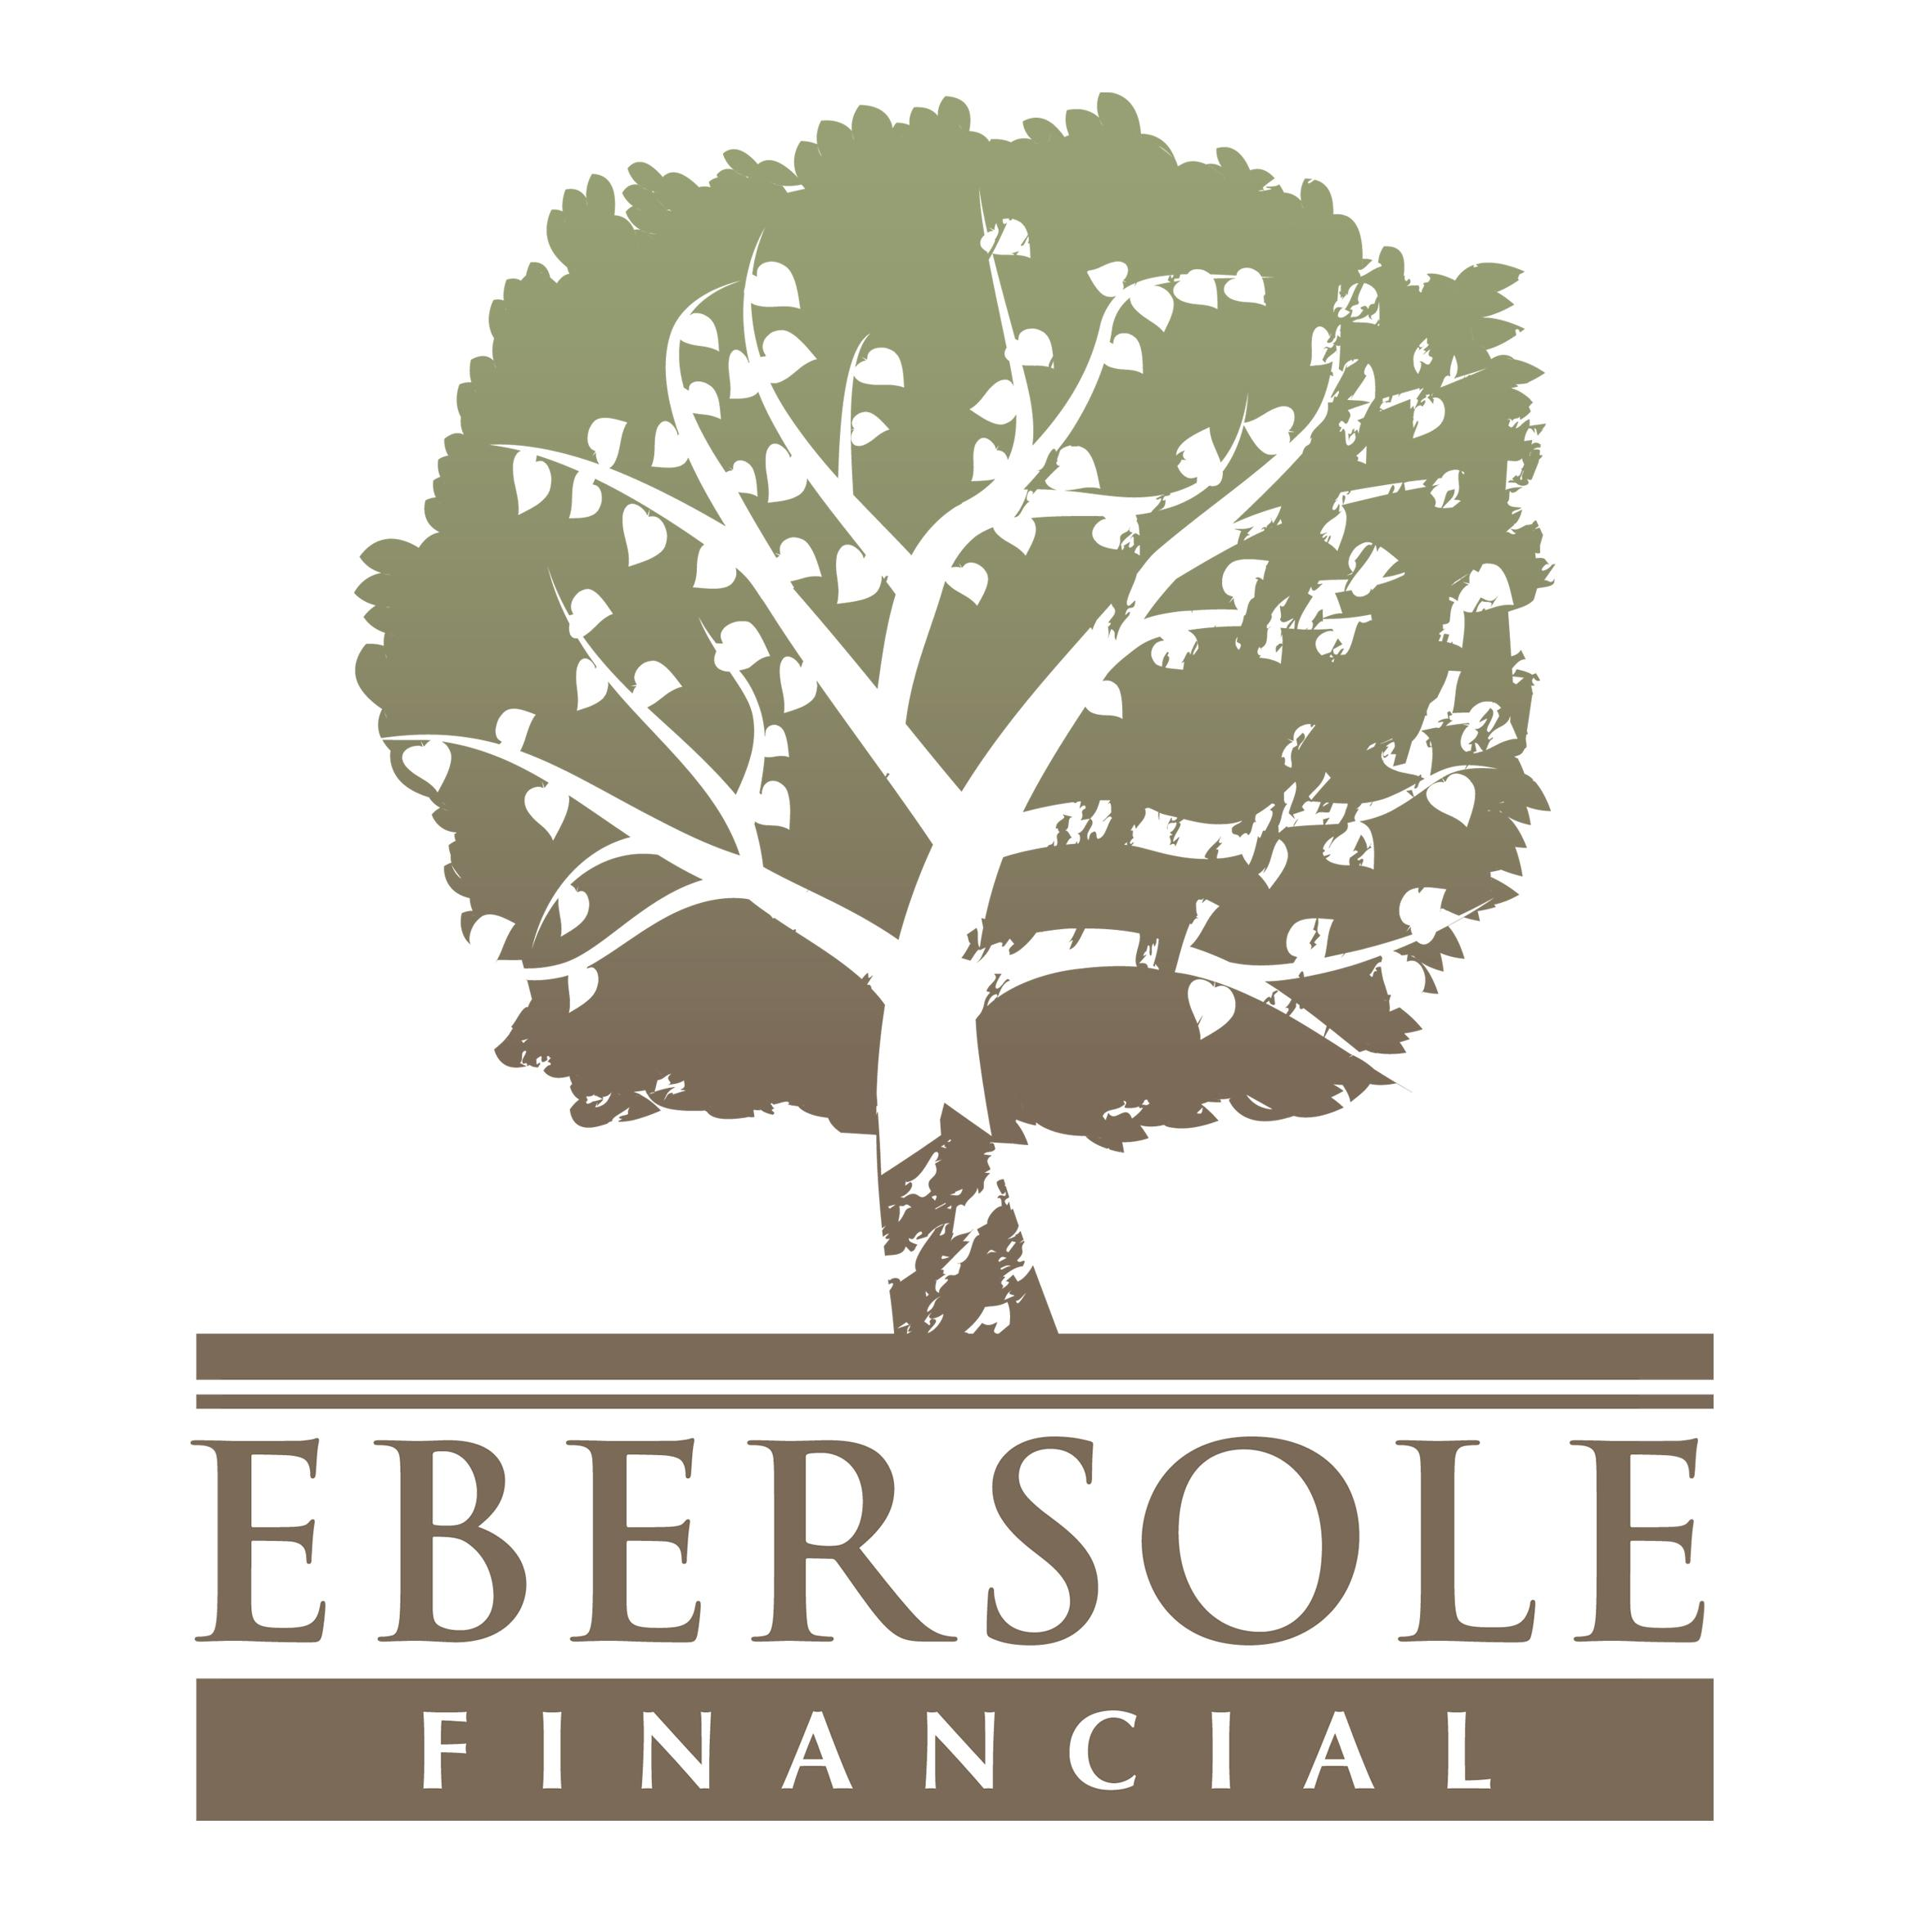 Ebersole Financial LLC